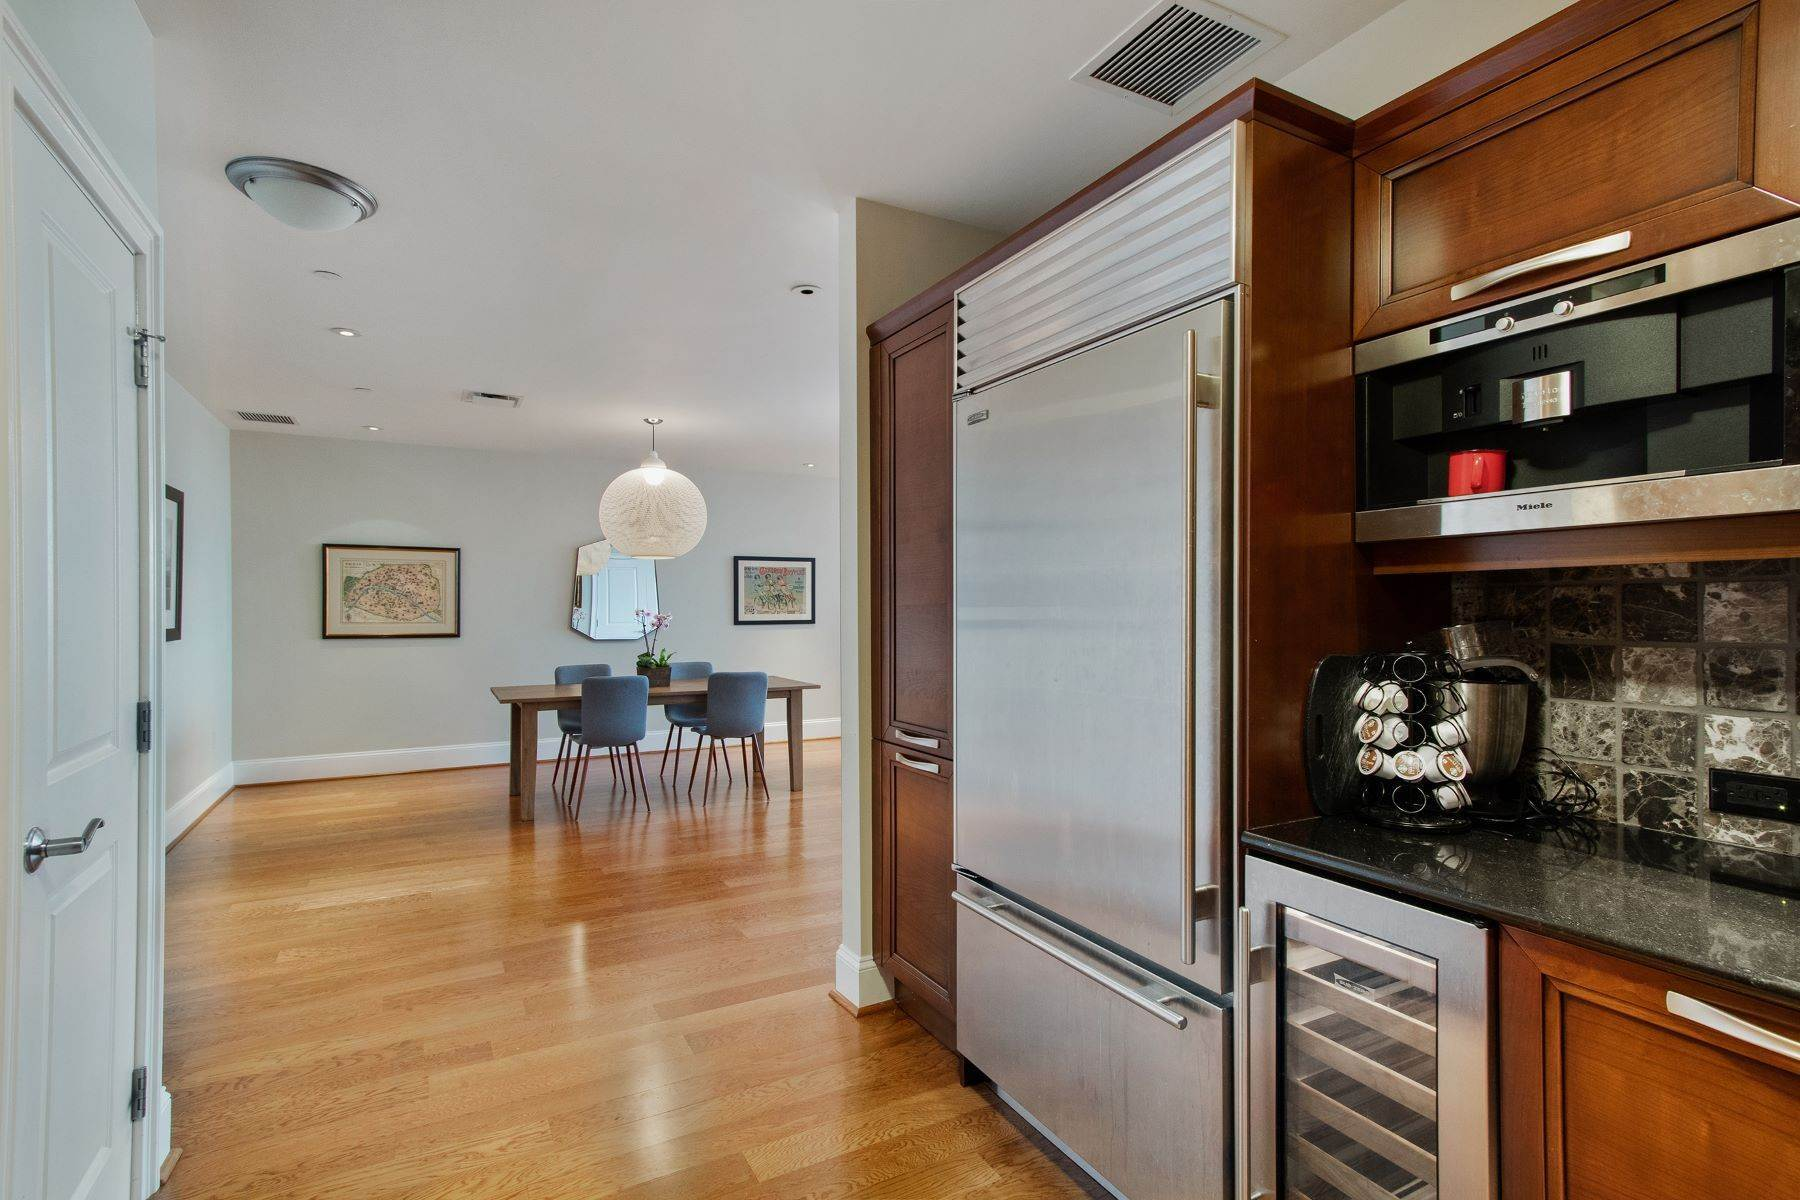 13. Apartments for Sale at 50 S 16TH ST #4202, 4202 Philadelphia, Pennsylvania 19102 United States